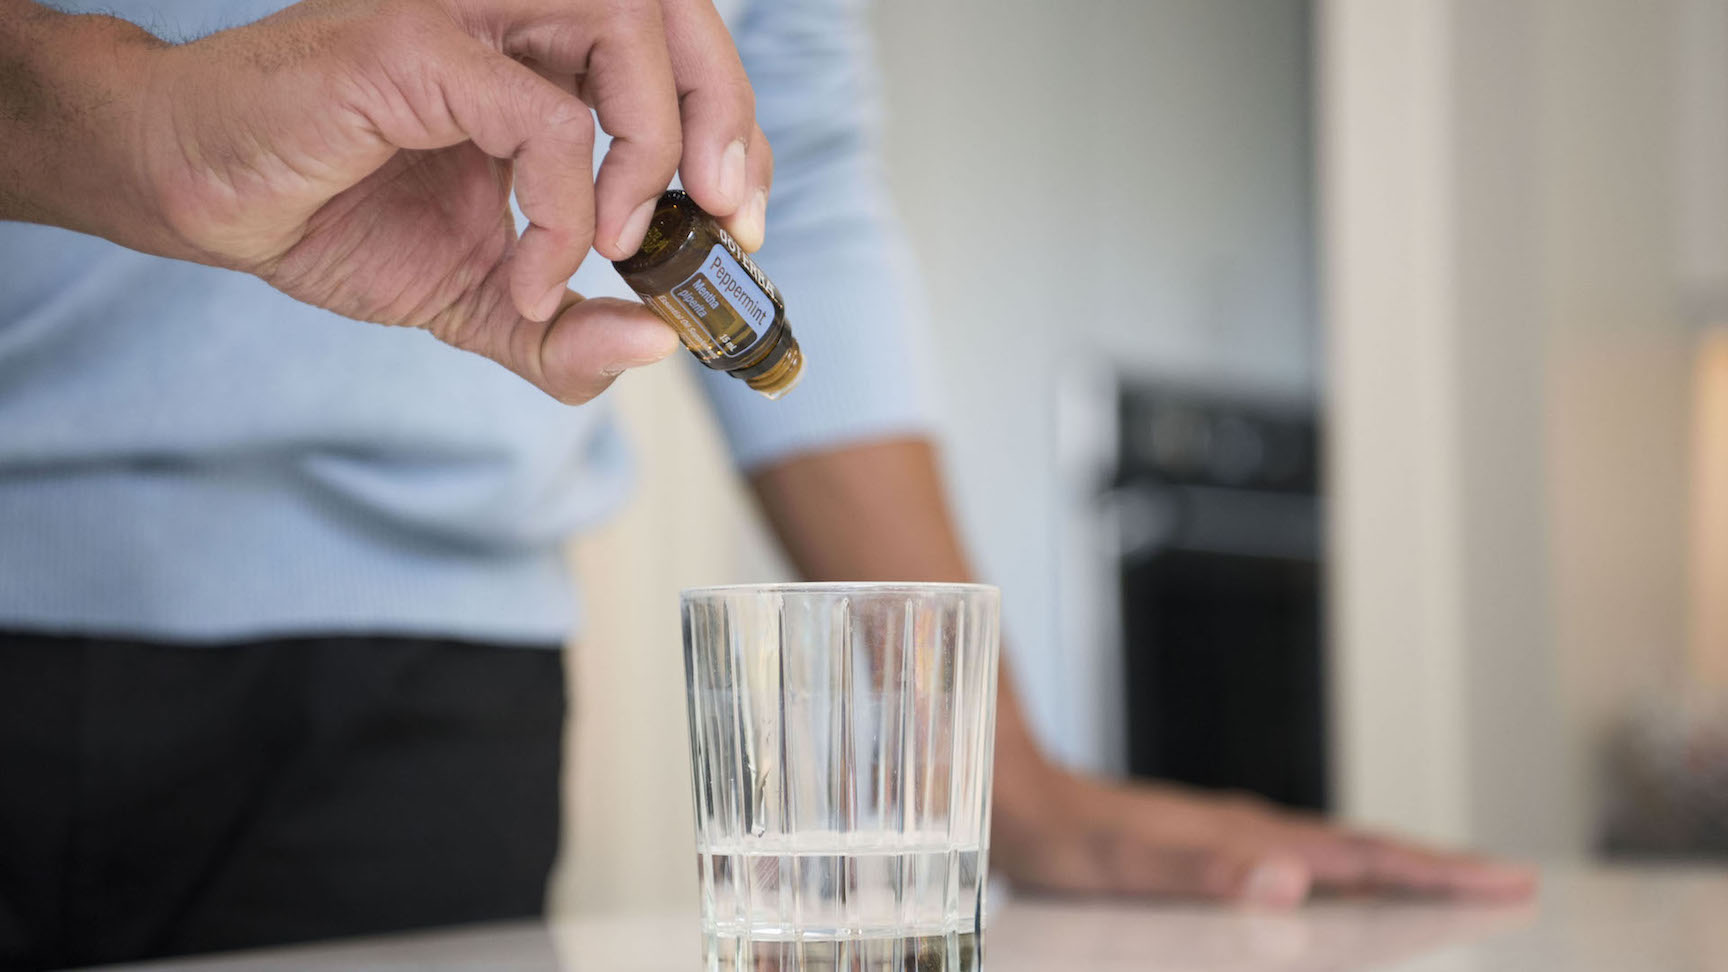 Is It Safe to Ingest Essential Oils? | dōTERRA Essential Oils